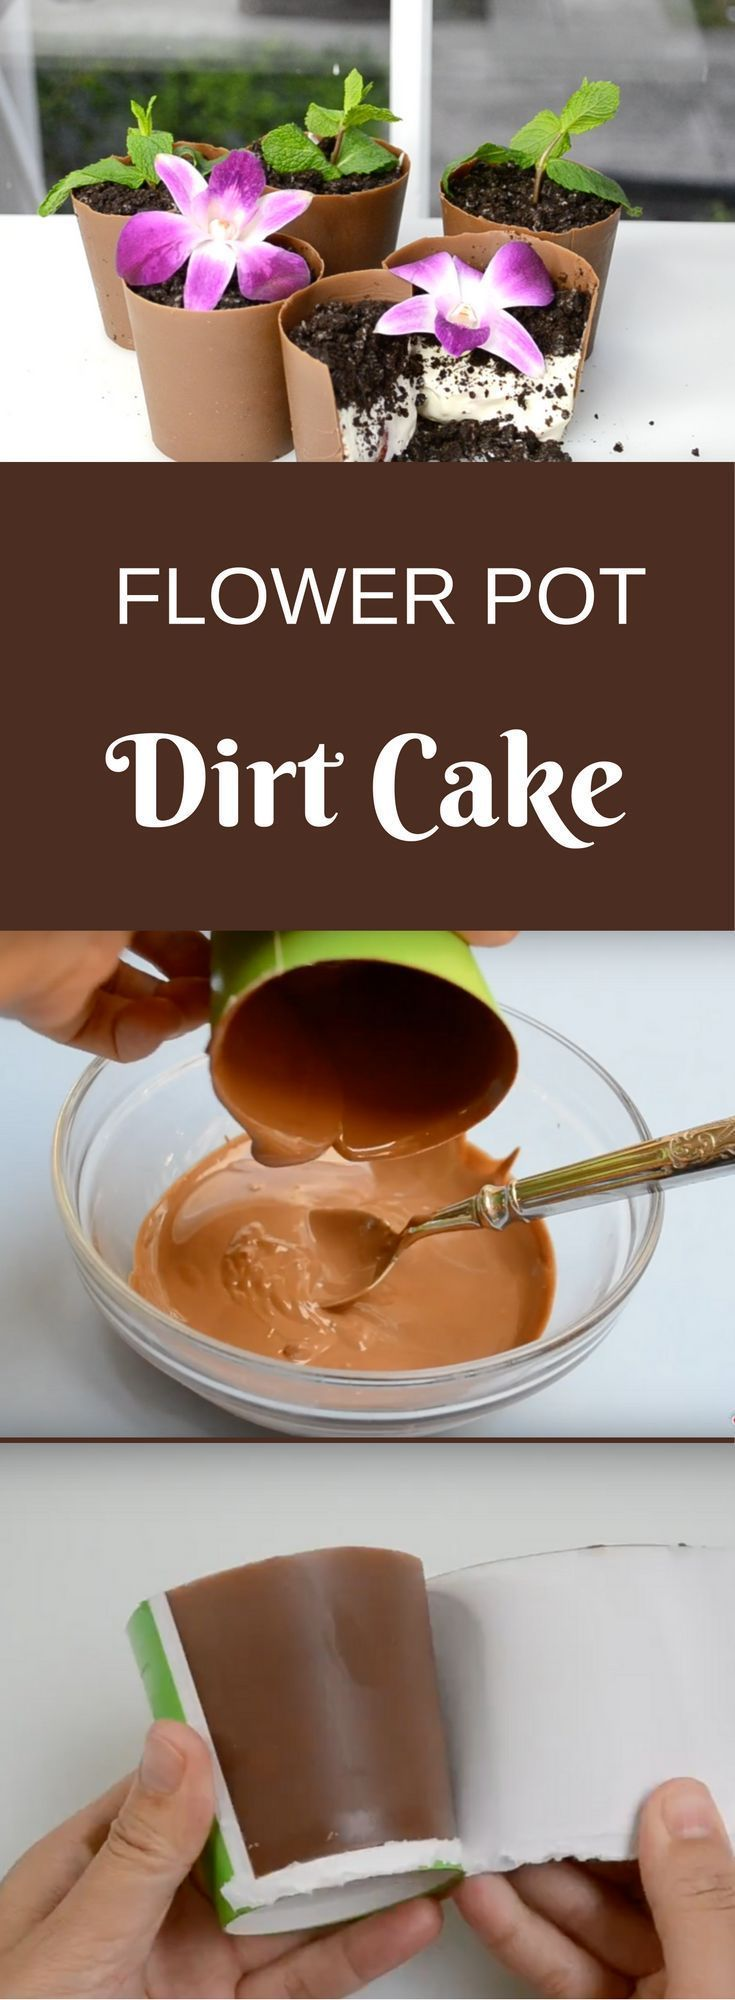 This No Bake Flower Pot Dirt Cake is easy to make and can